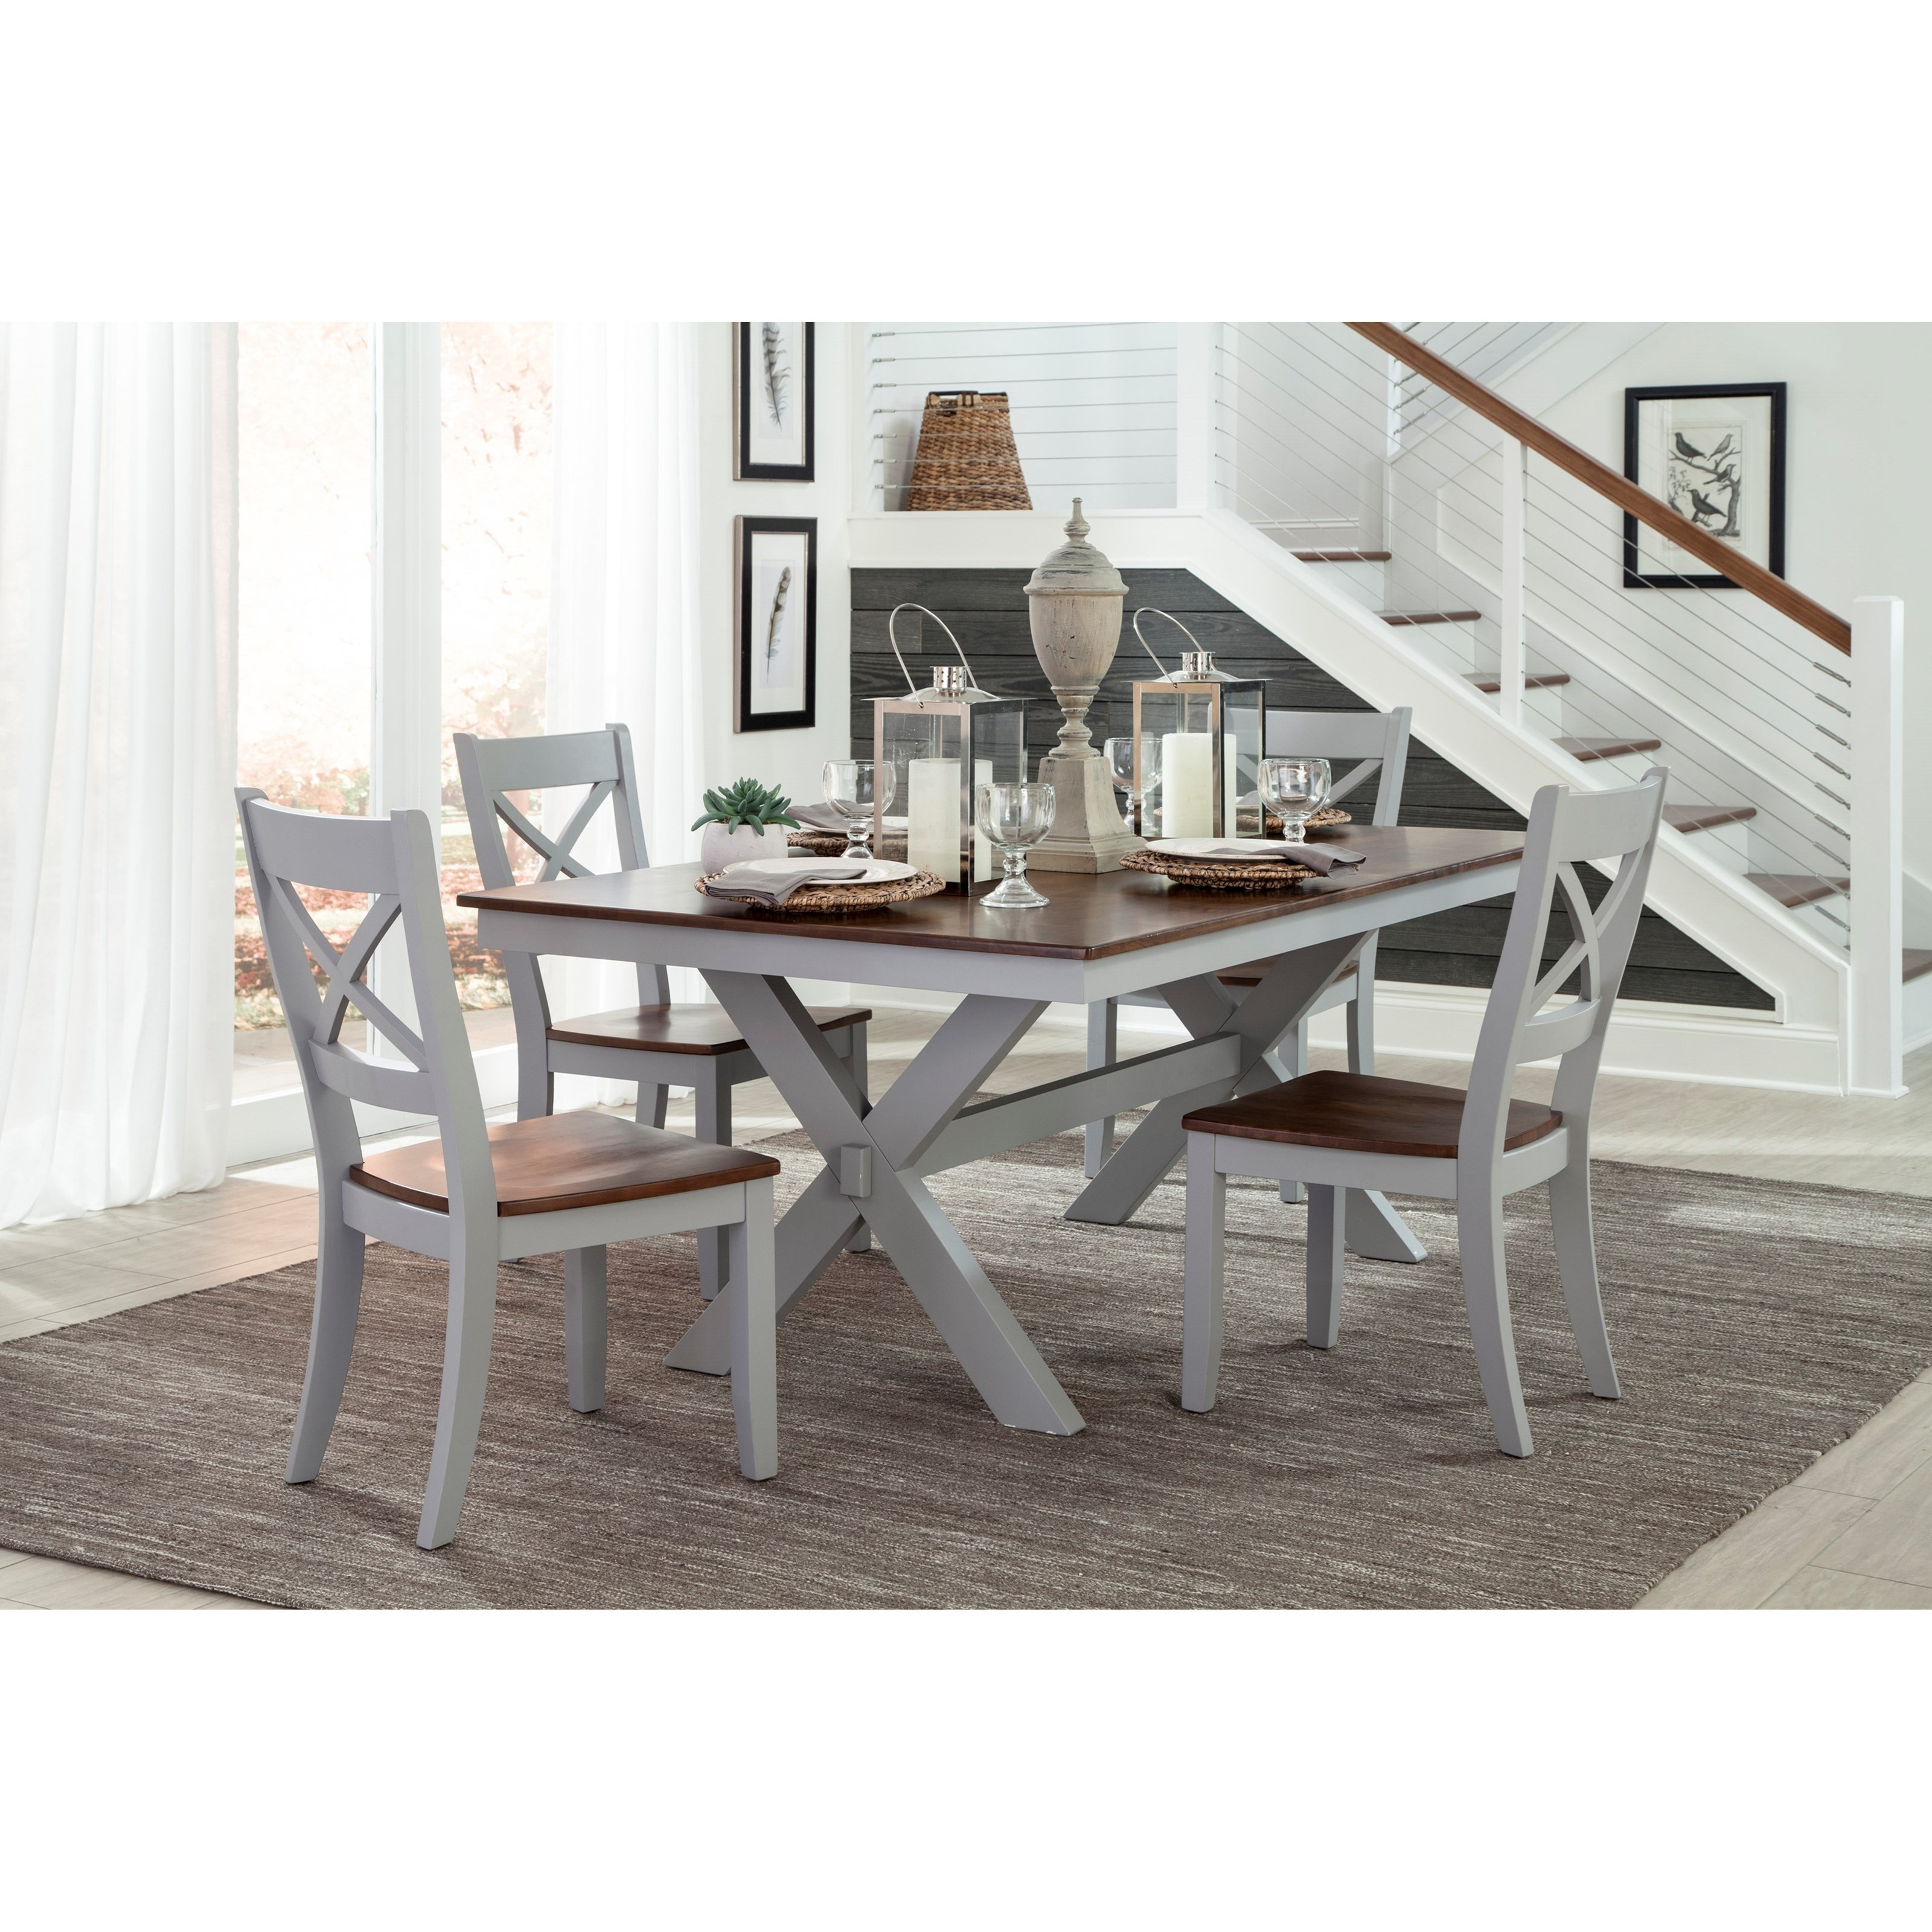 Charming Intercon Small Space5 Piece Dining Set ...